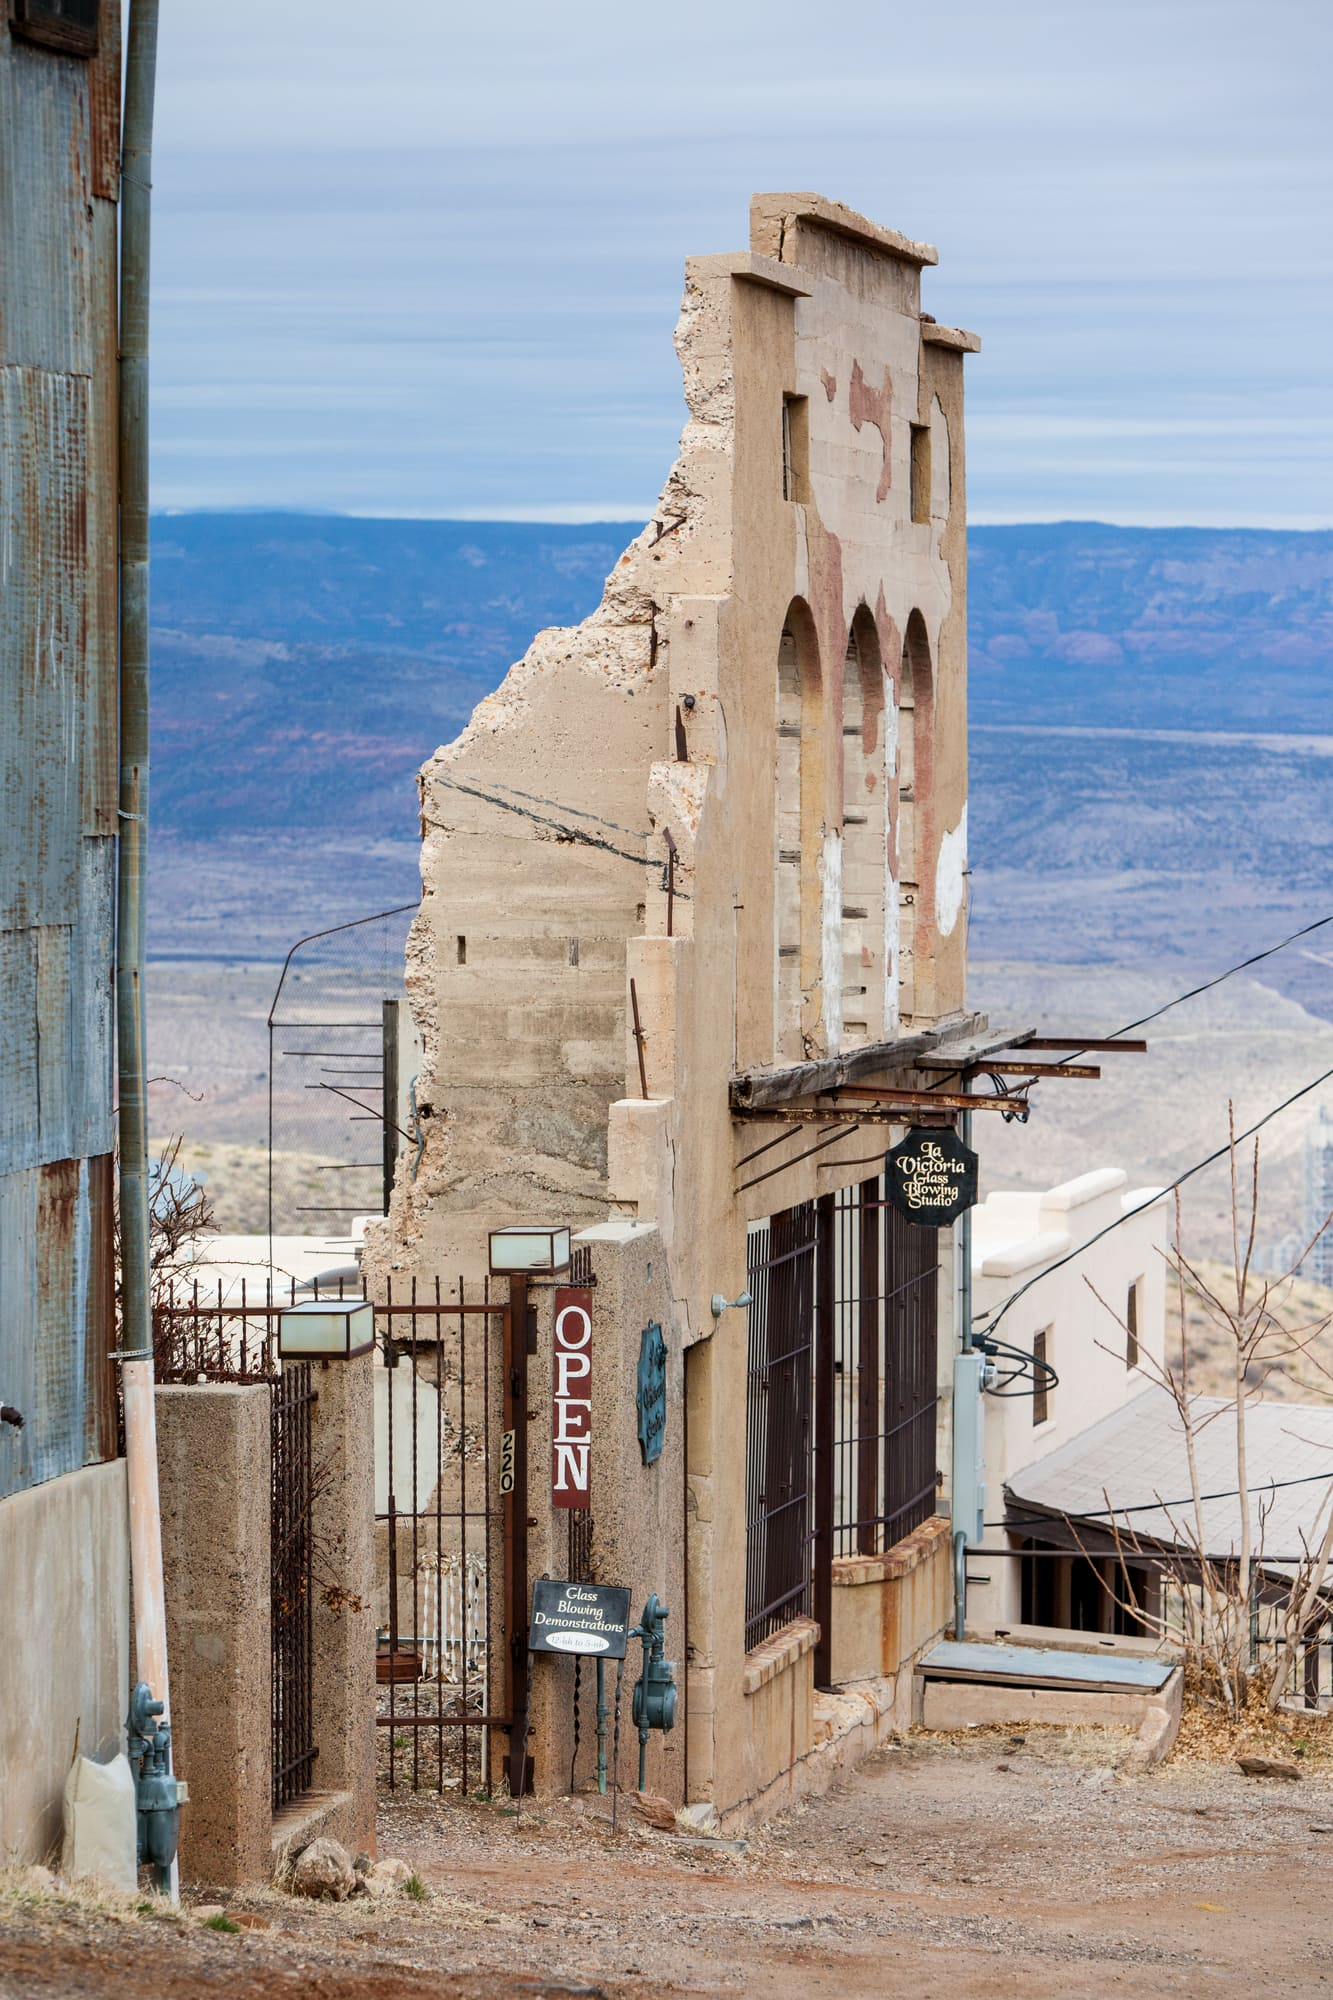 Although hundreds of people now live in Jerome, long-empty buildings remind visitors that this truly is a ghost town